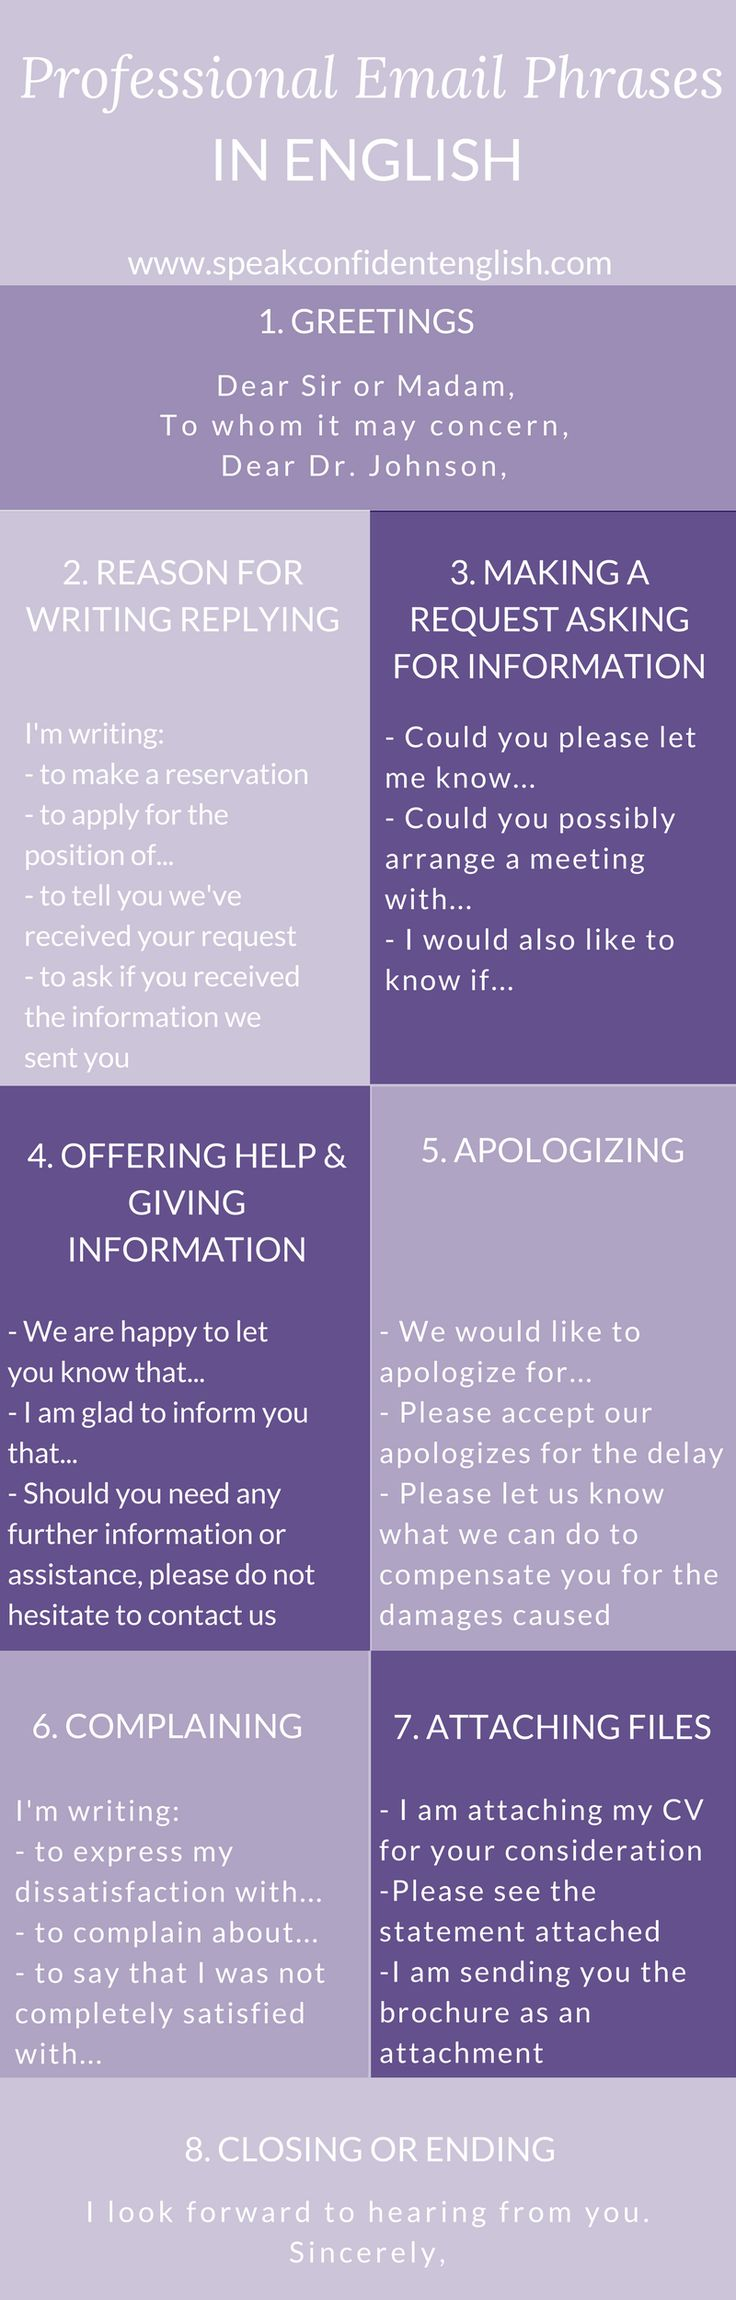 Need some quick help for writing emails in English? Get more useful tips at: http://www.speakconfidentenglish.com/7-rules-for-emails/?utm_campaign=coschedule&utm_source=pinterest&utm_medium=Speak%20Confident%20English%20%7C%20English%20Fluency%20Trainer